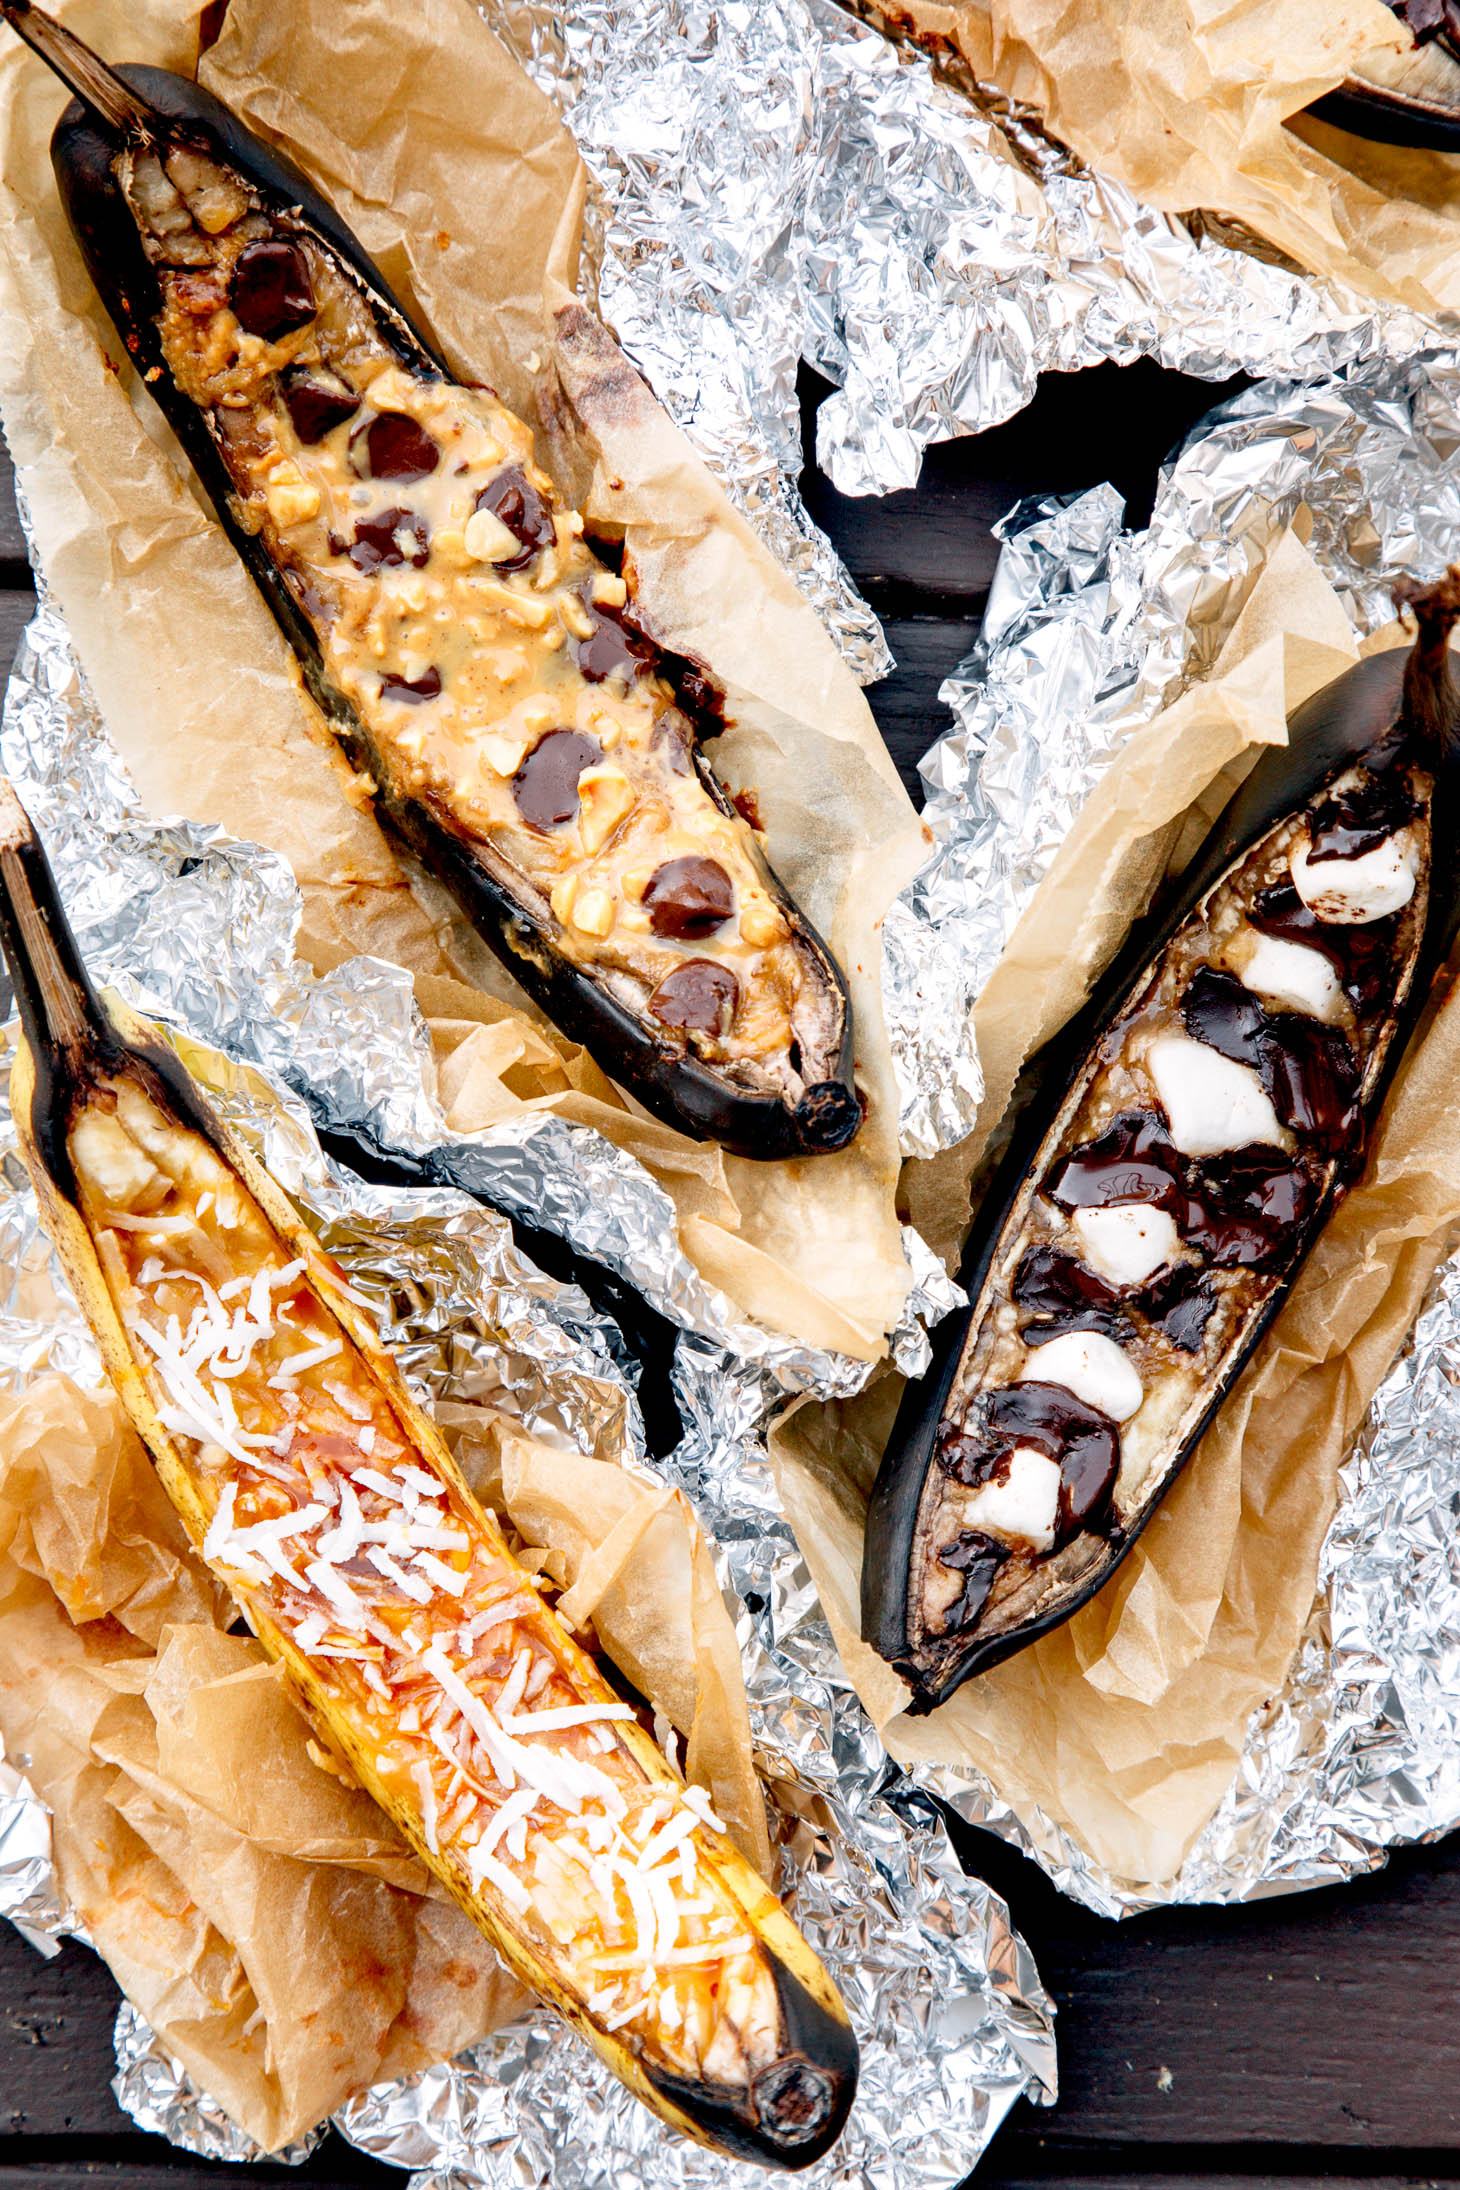 Easy camp cooking: Campfire Banana Boat dessert, cooked right on the grill!